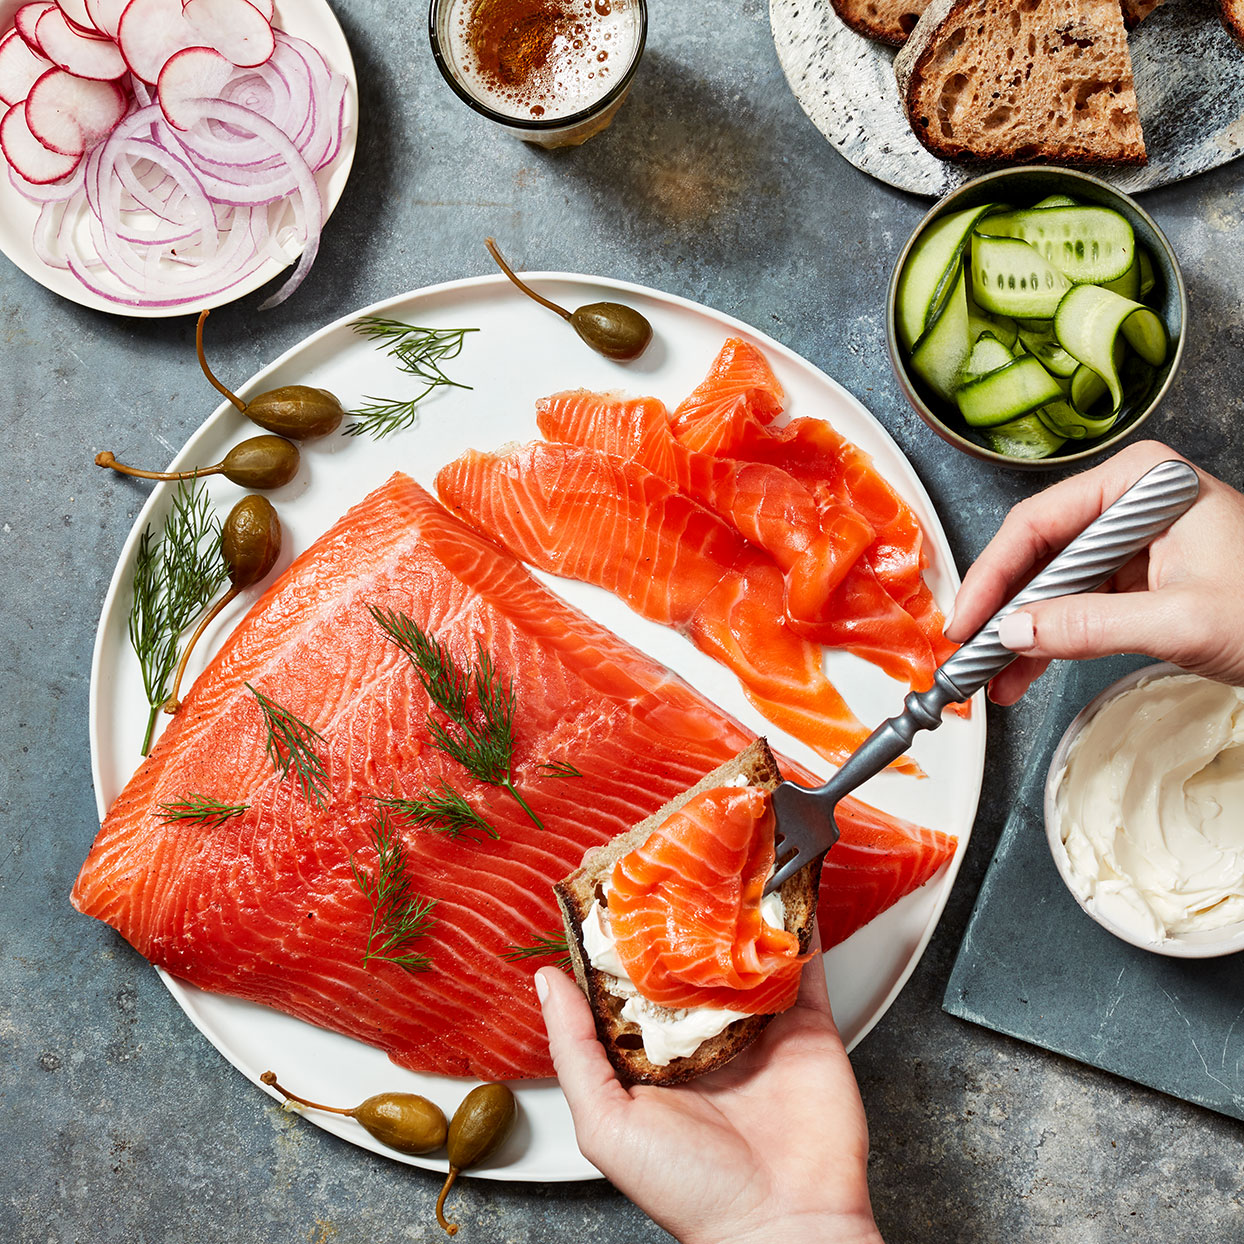 Cardamom-Cured Salmon Gravlax Trusted Brands